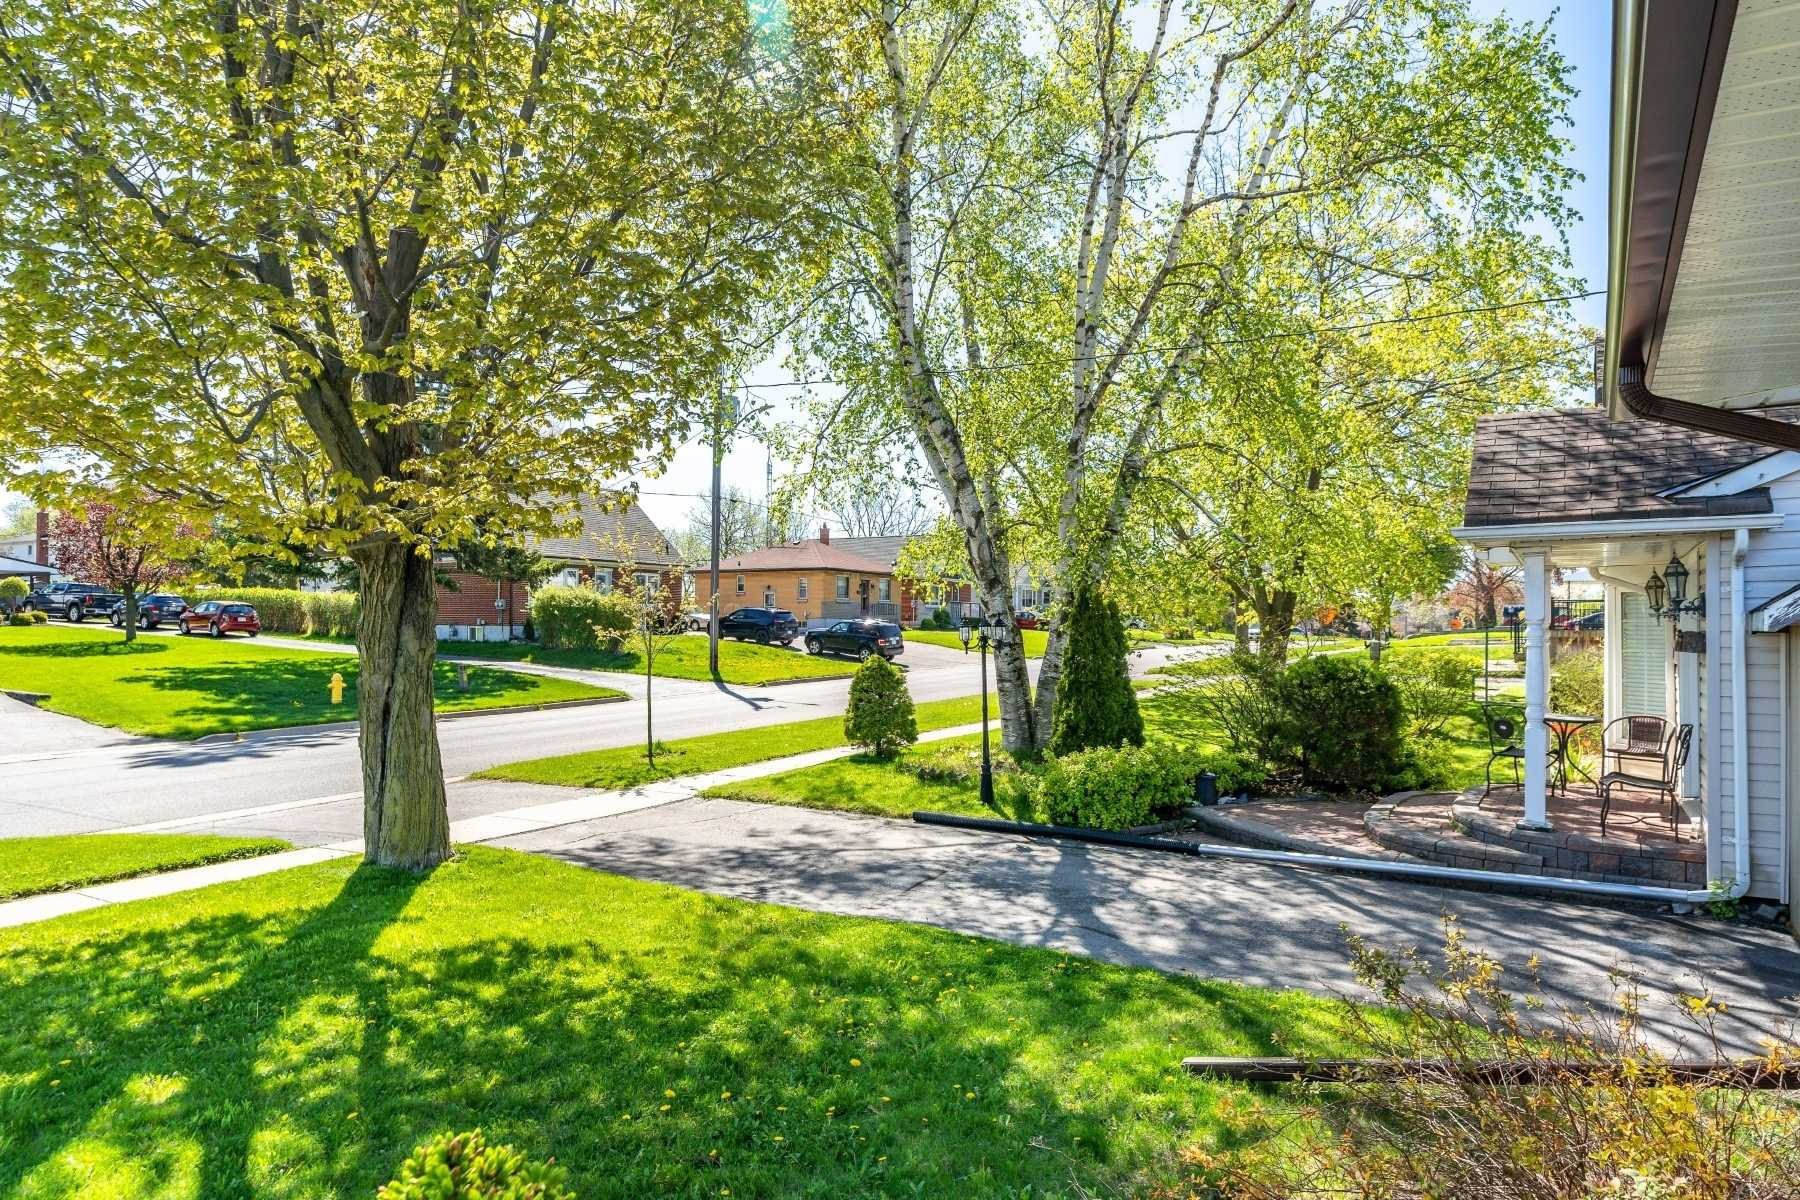 Photo 15: Photos: 40 Eastlawn Street in Oshawa: Donevan House (Bungalow) for sale : MLS®# E4769026